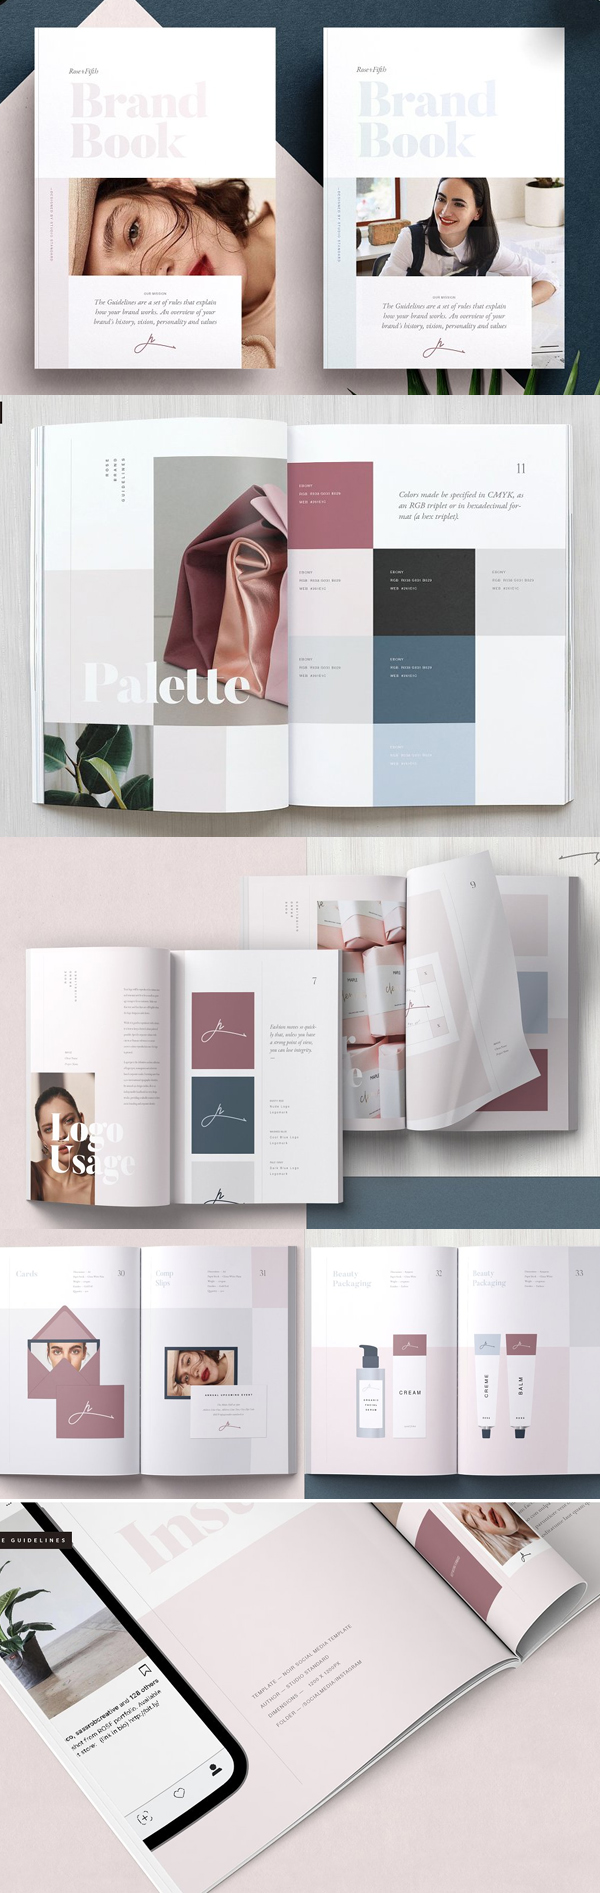 ROSE — Brand Guidelines